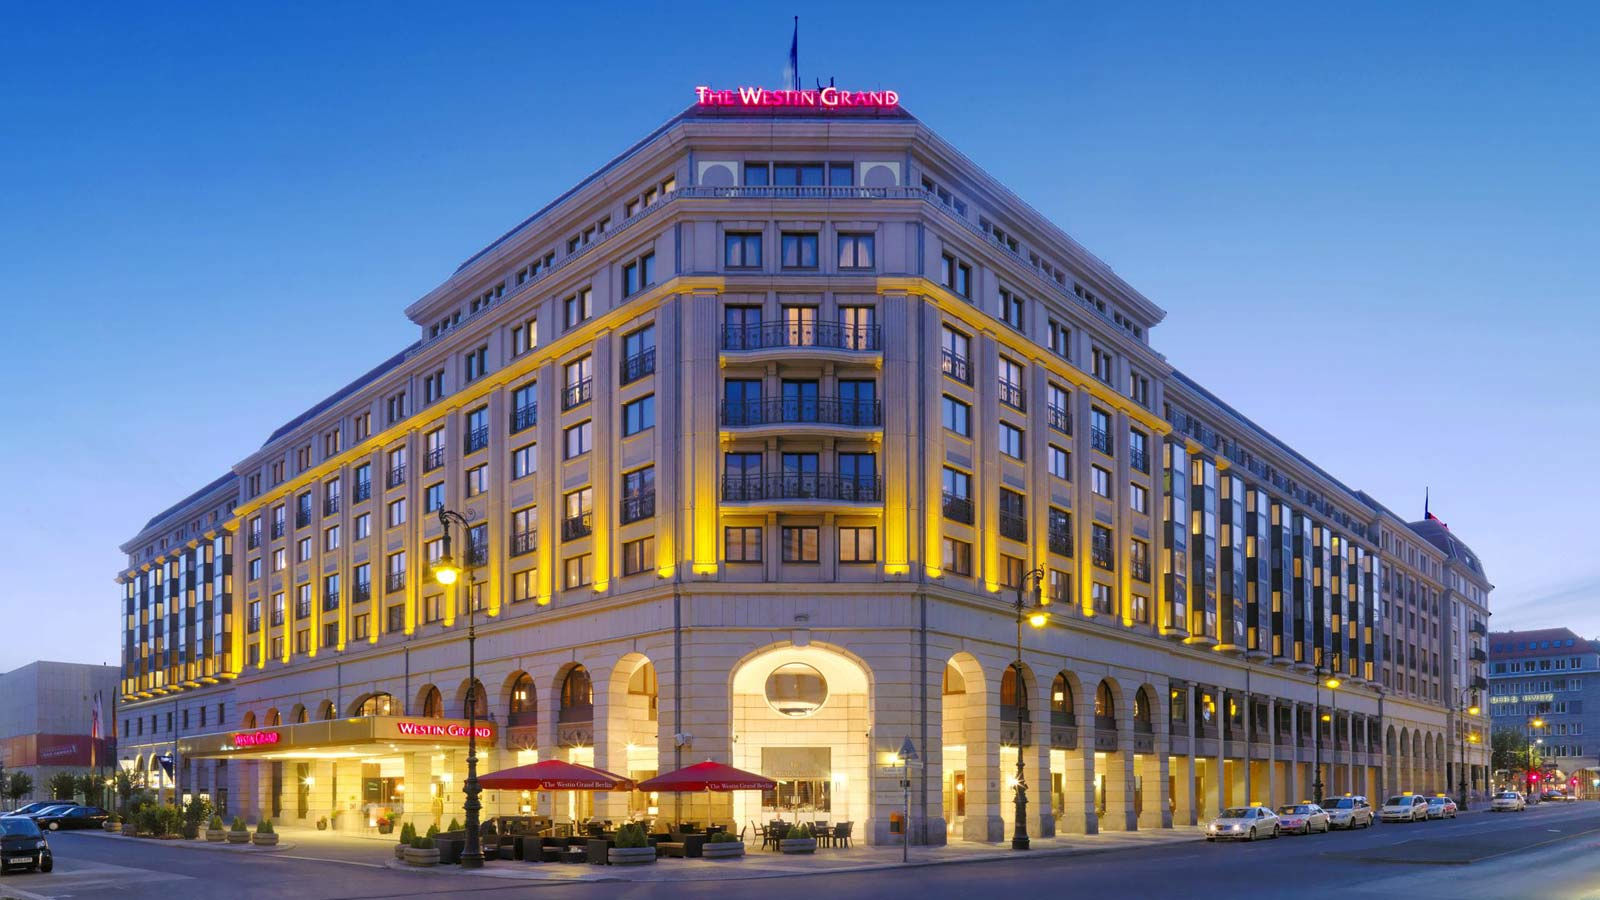 Aussenansicht des The Westin Grand Hotel Berlin